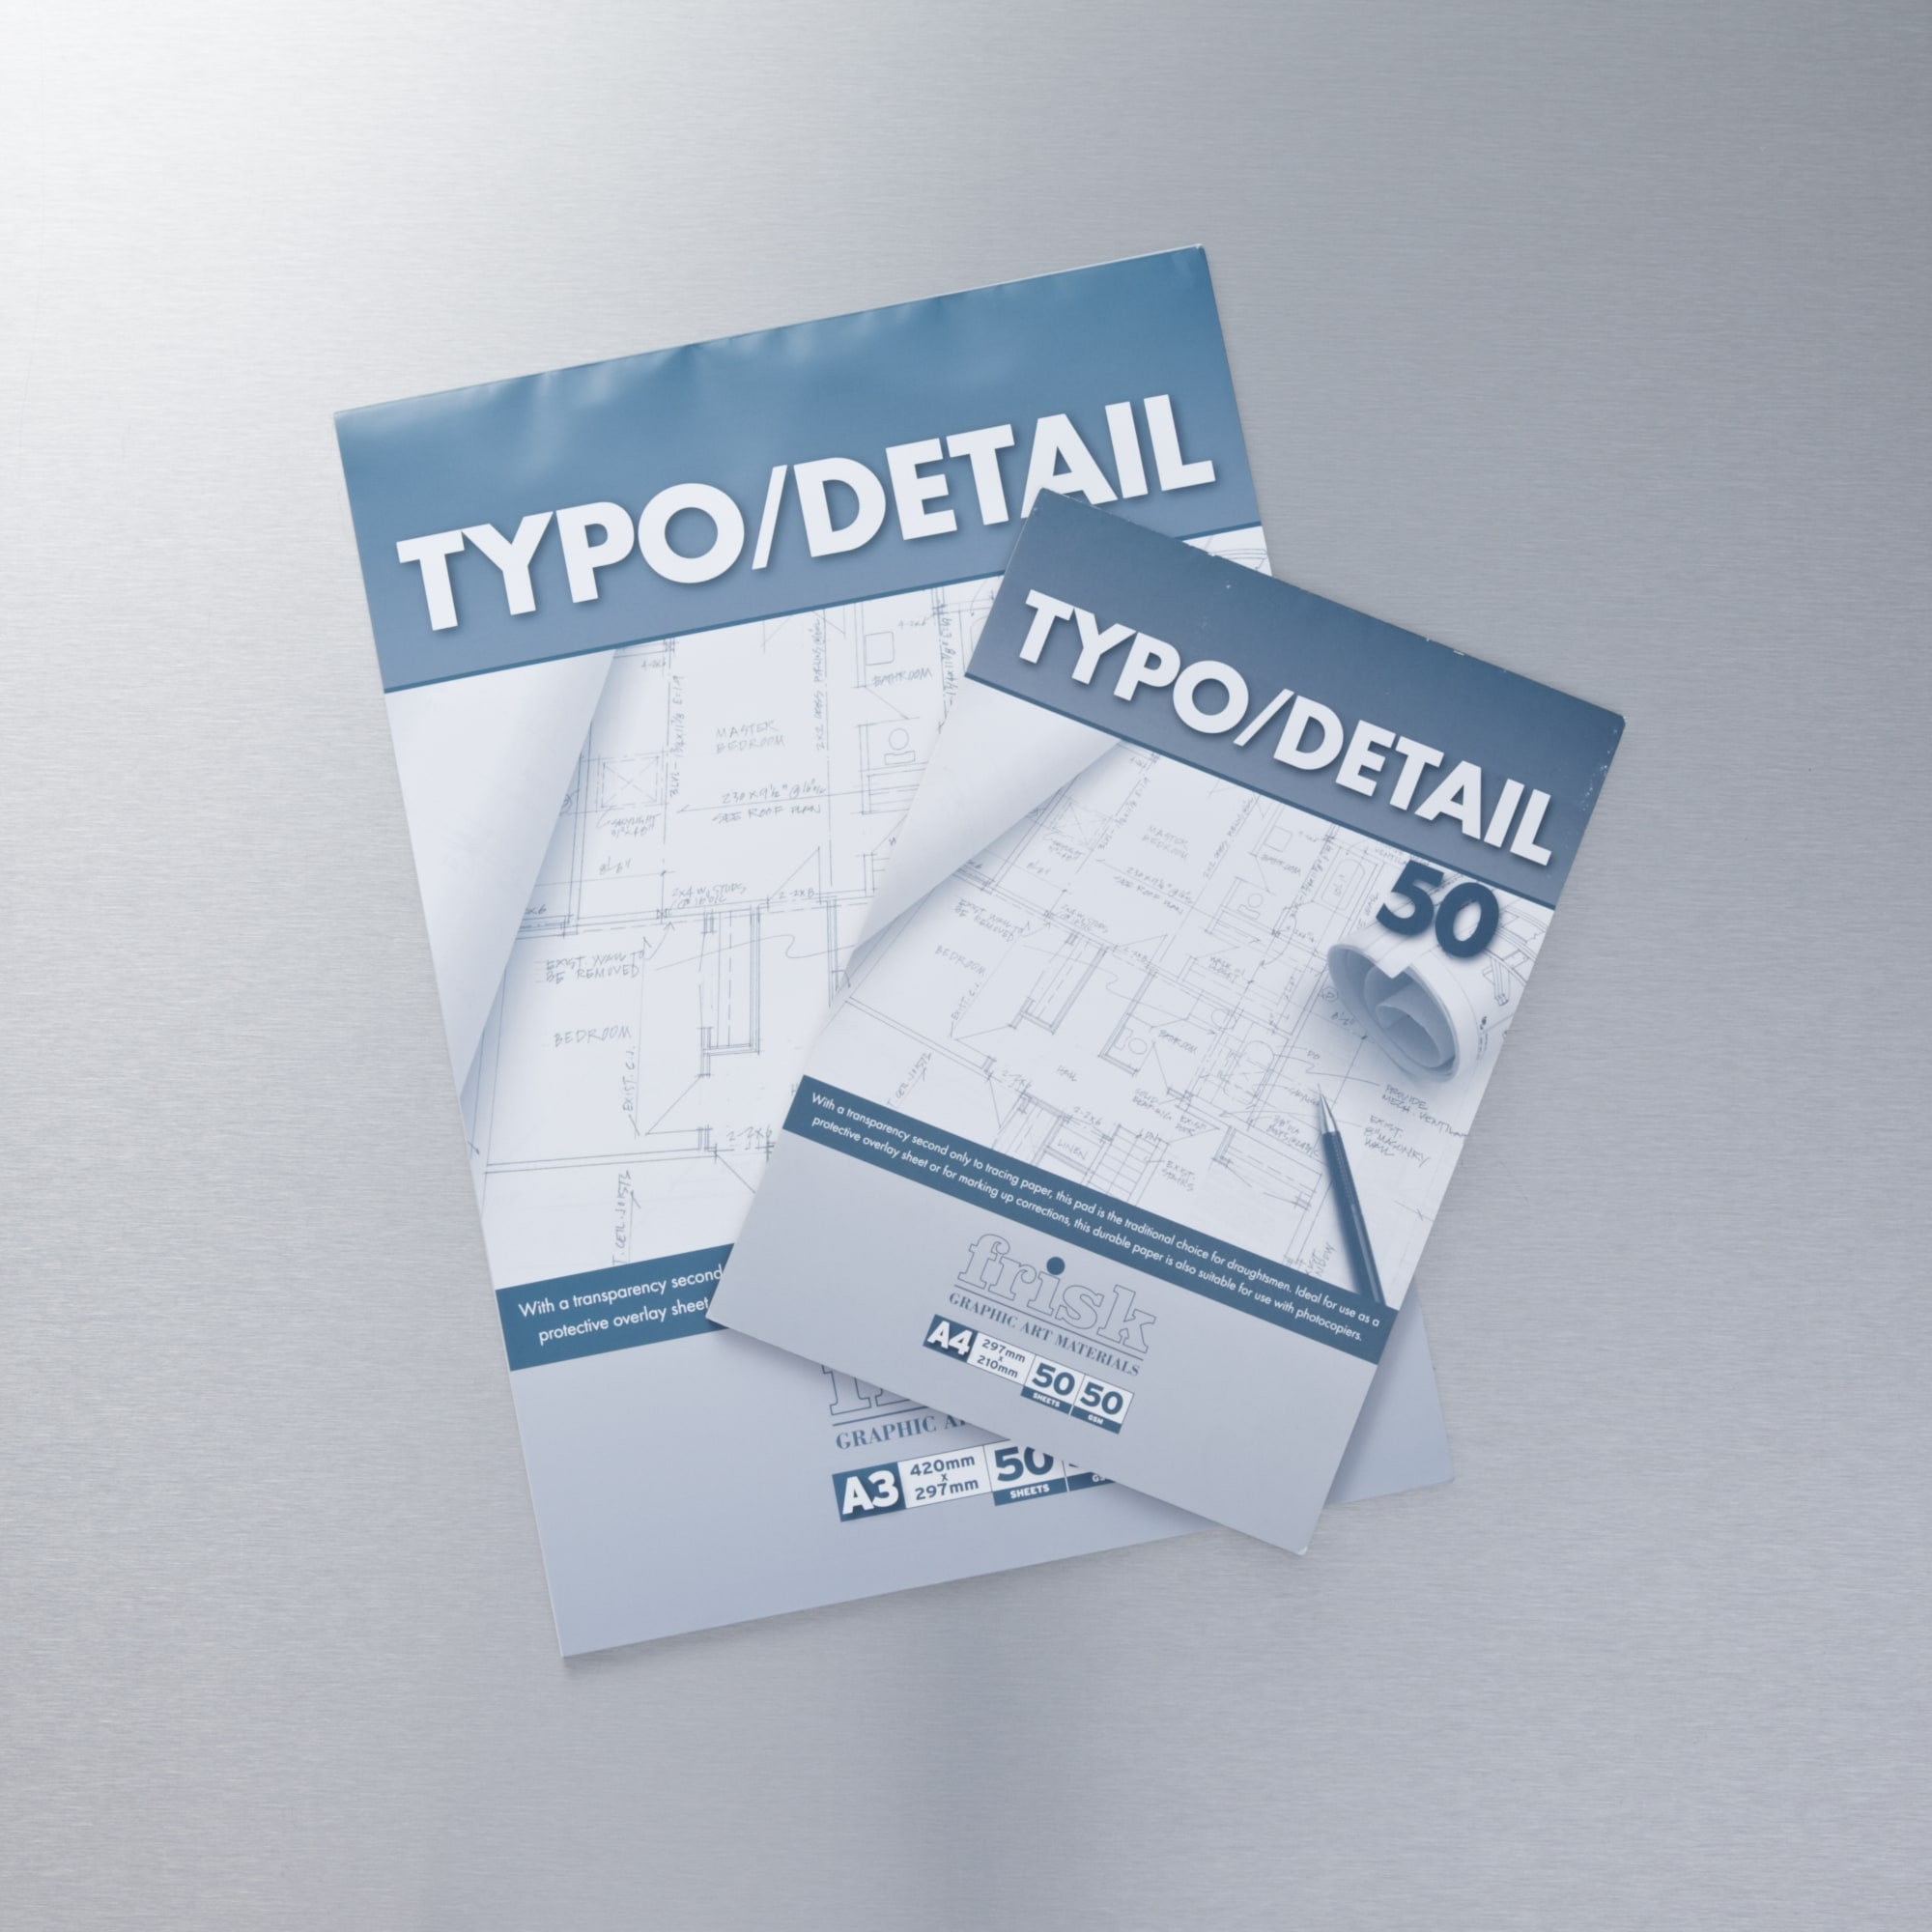 Frisk typo detail 53gm 50 sheets buy graphic paper pads for Buy blueprint paper